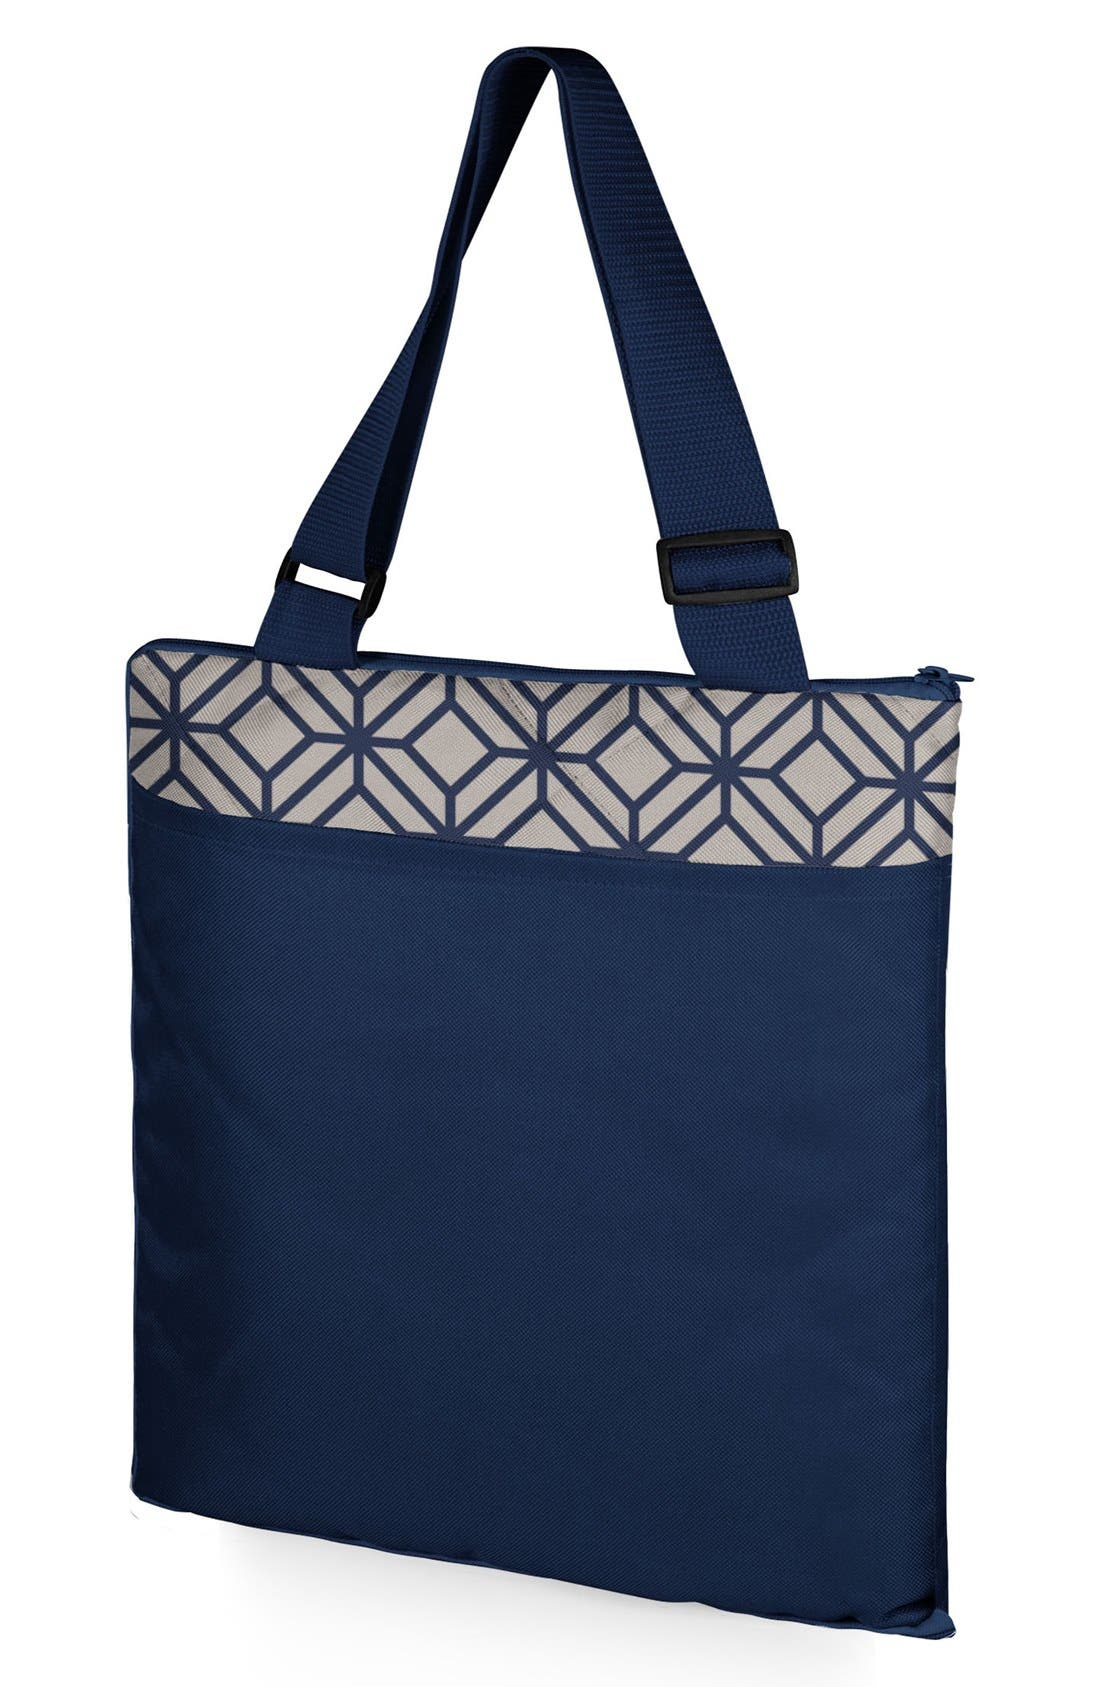 Alternate Image 3  - Picnic Time 'Vista XL' Fold-Up Blanket Tote